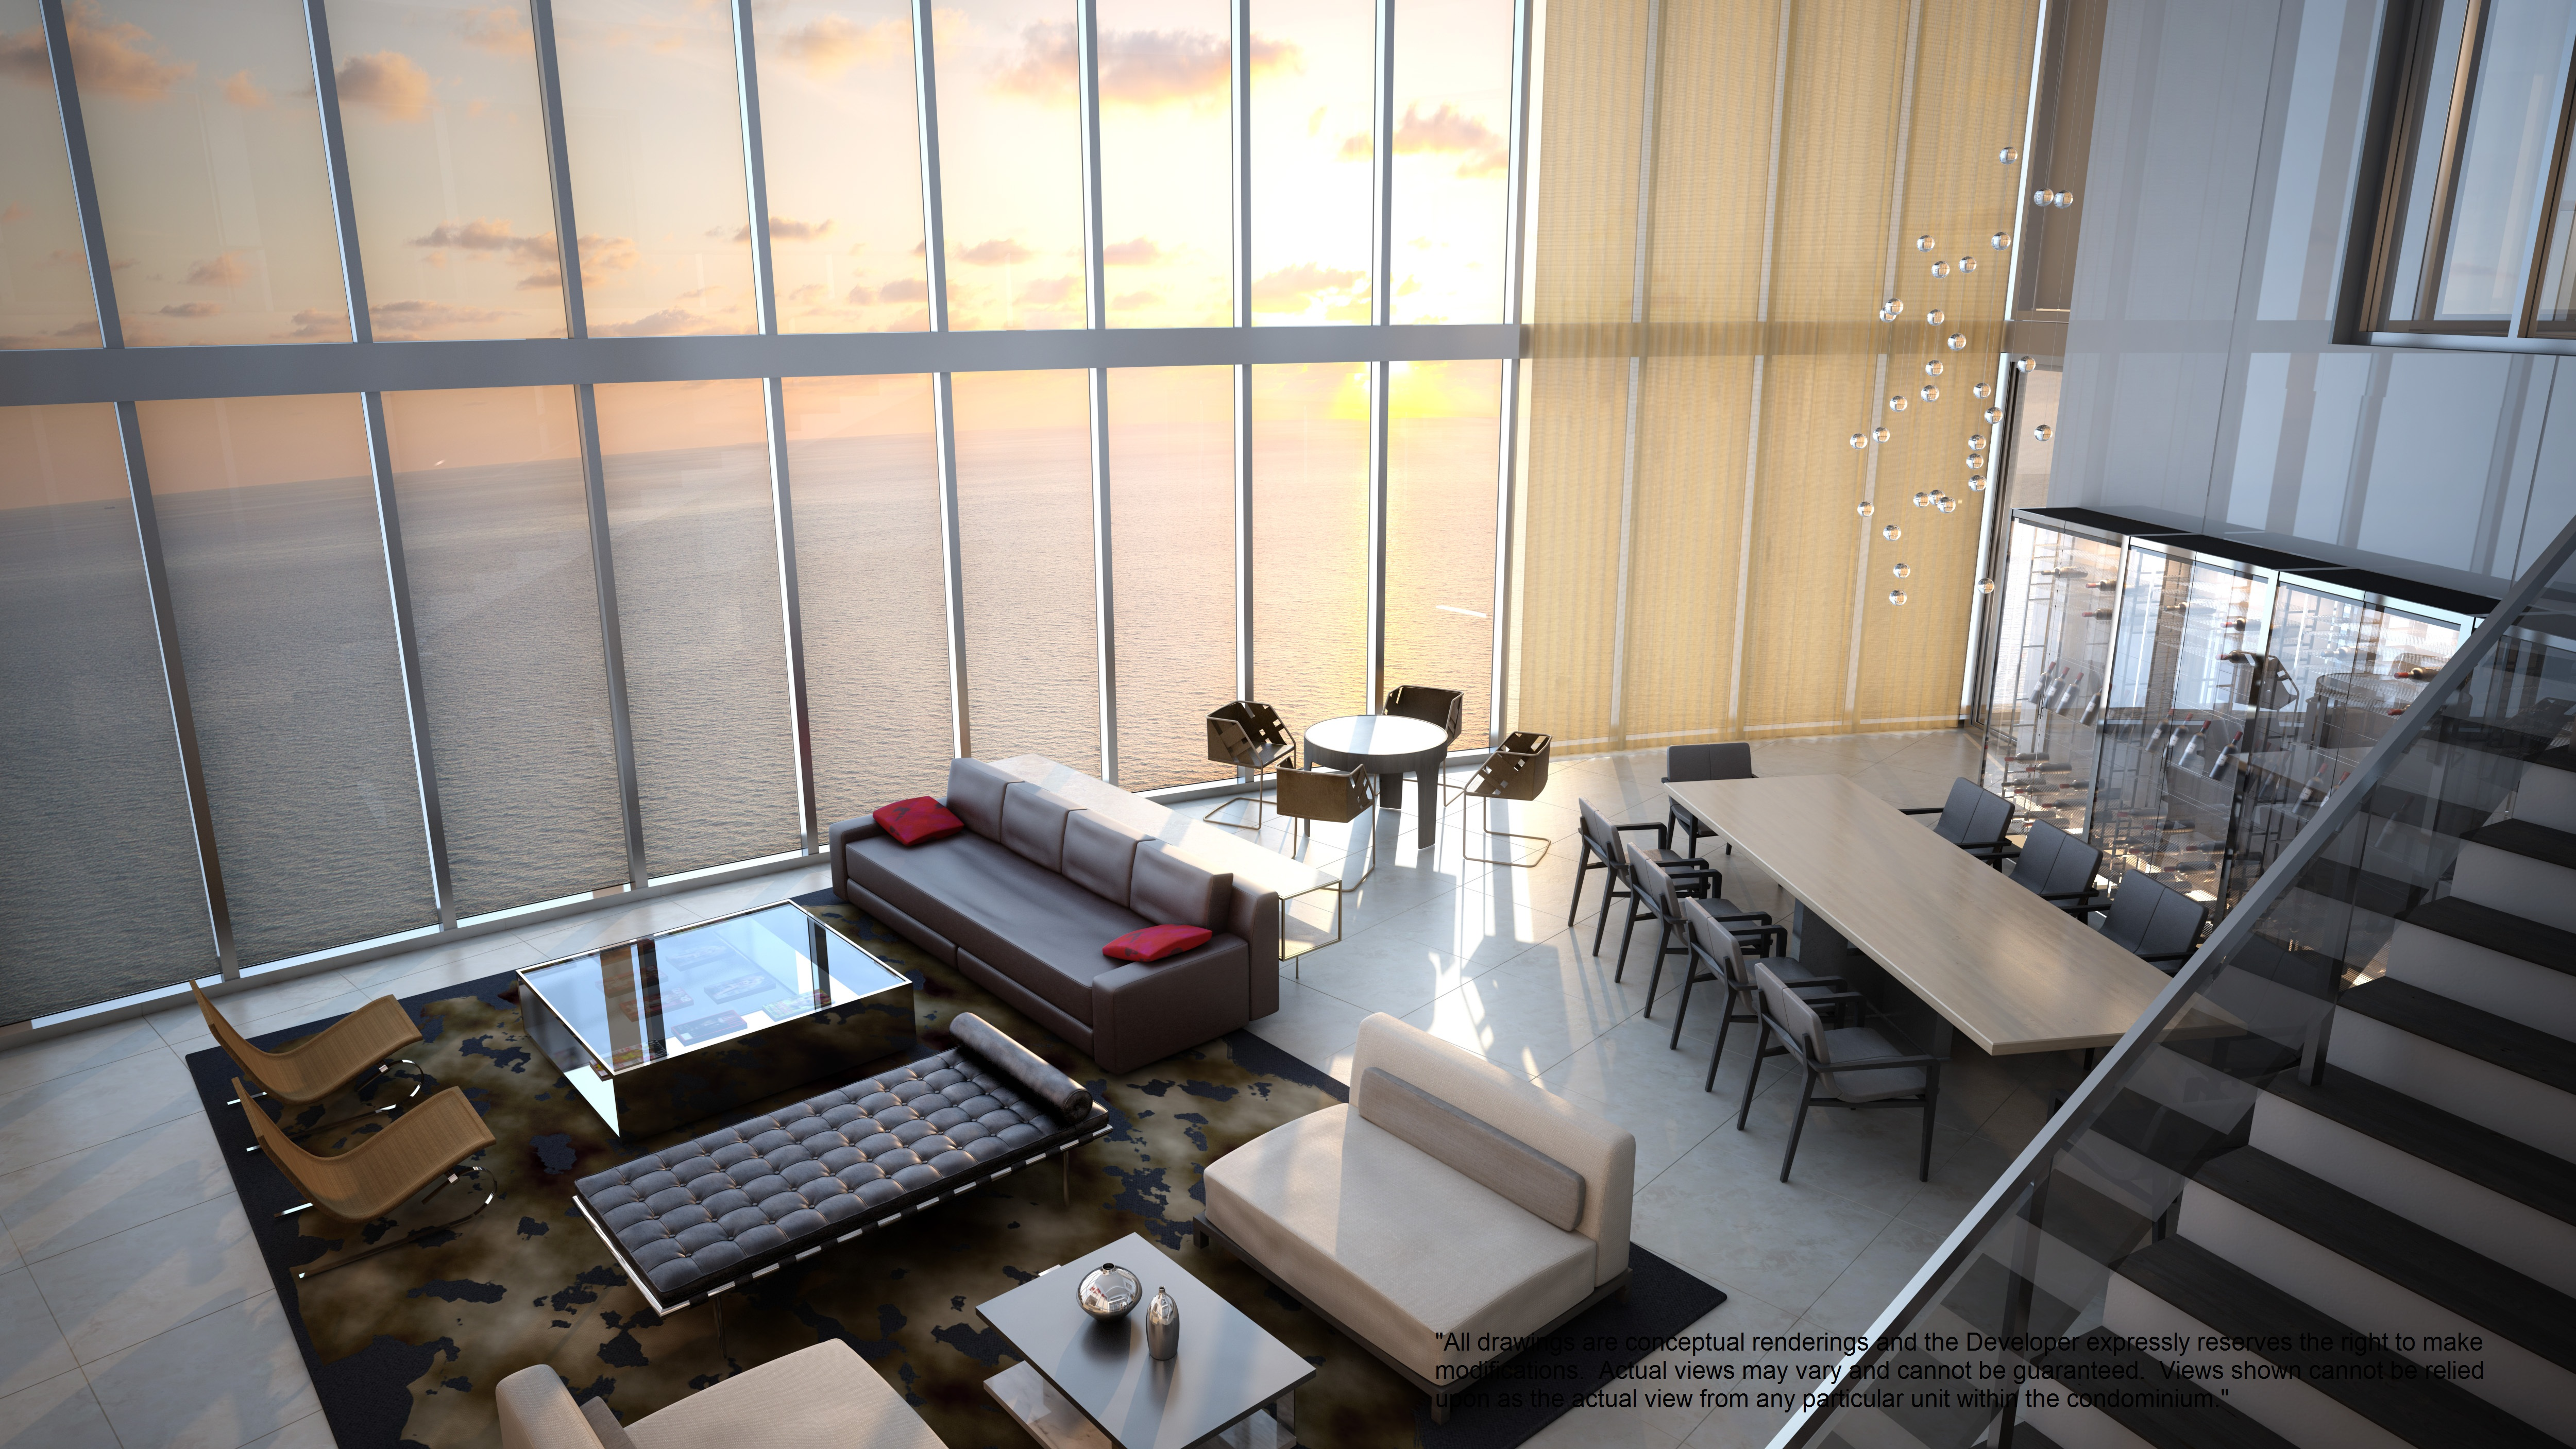 Design Design Apartments porsche tower miami beachfront condos sunny isles beach slider